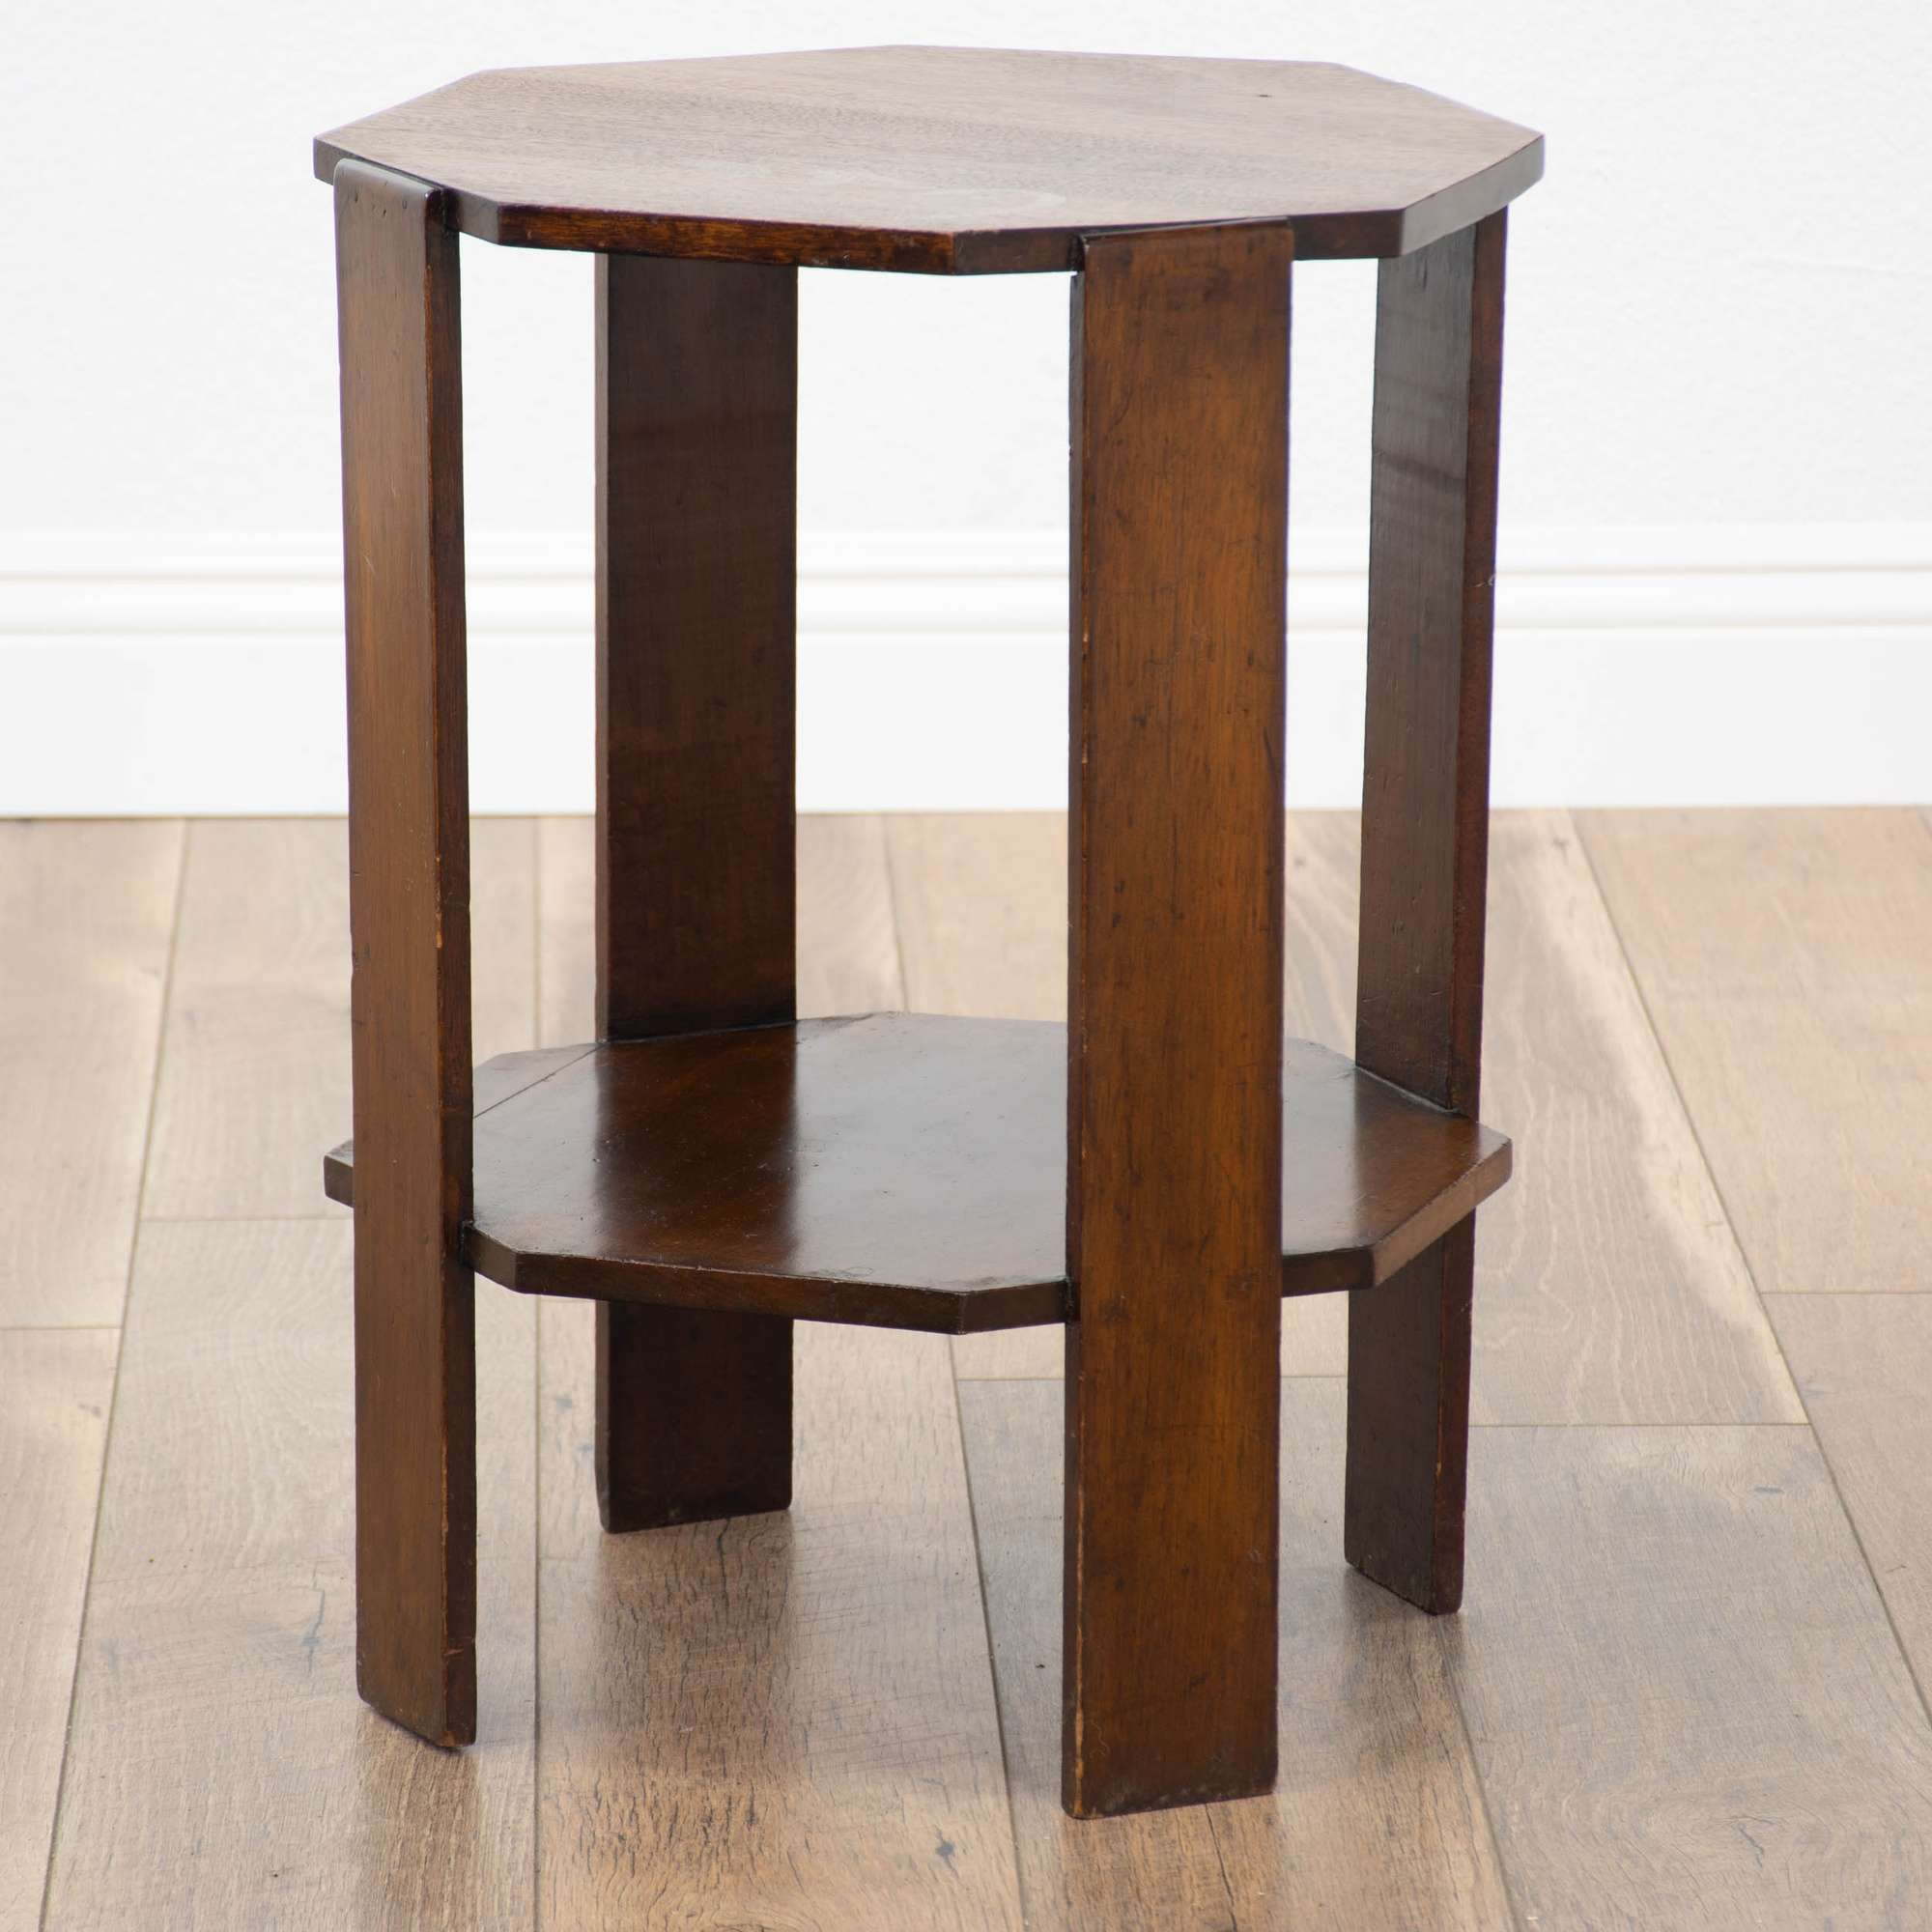 Fabulous Octagonal Mission Arts And Crafts Style End Table Loveseat Uwap Interior Chair Design Uwaporg